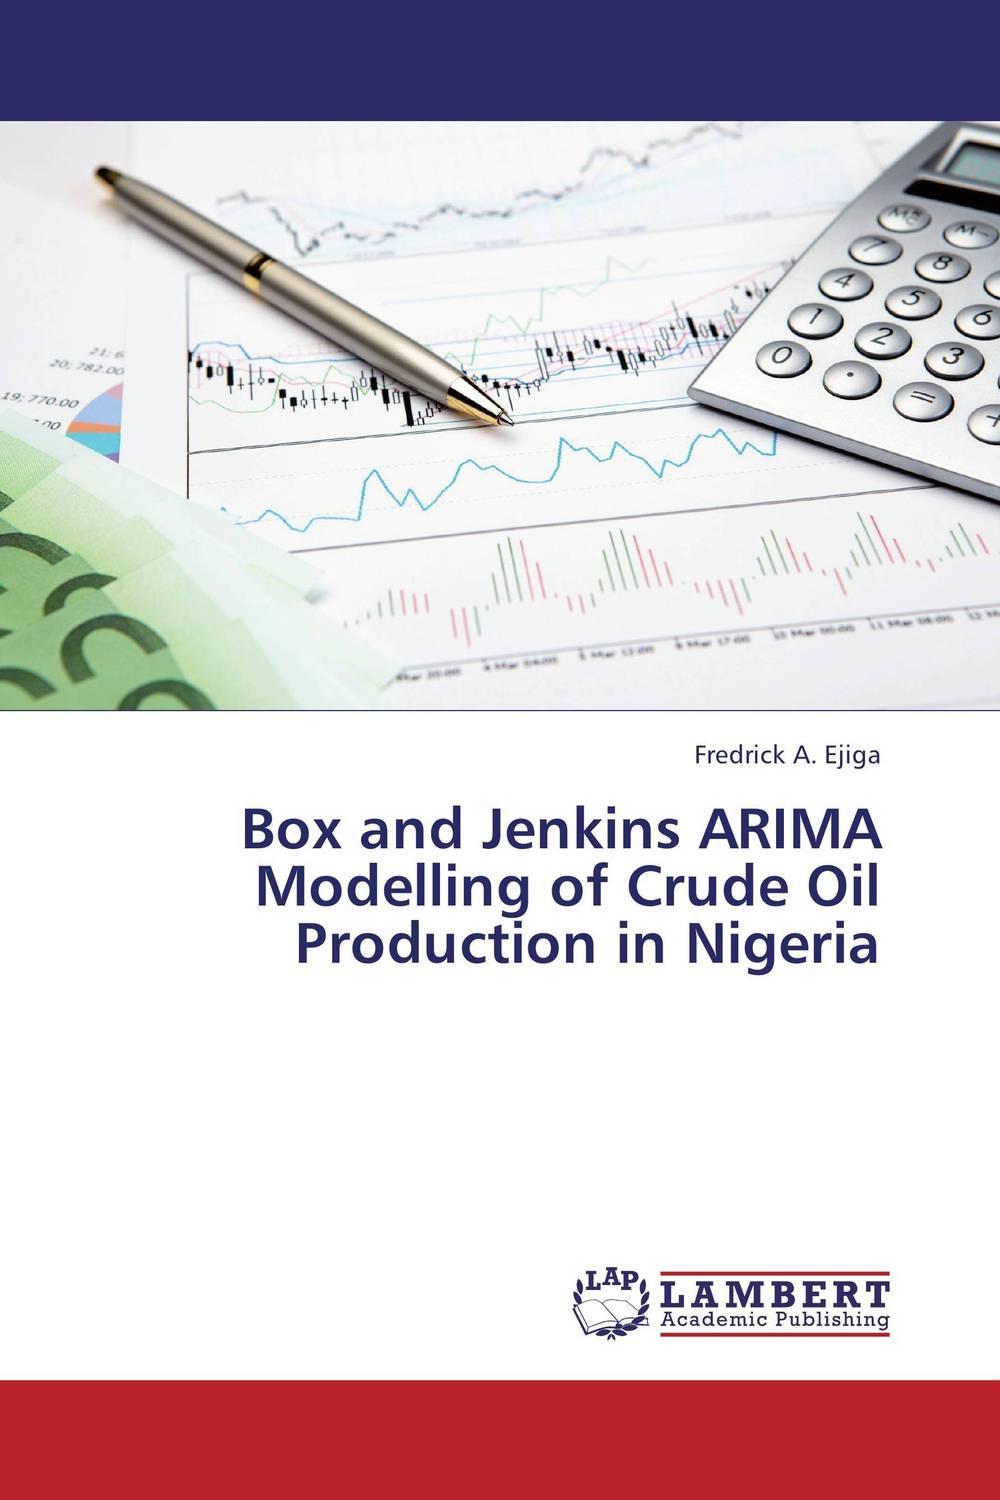 Box and Jenkins ARIMA Modelling of Crude Oil Production in Nigeria